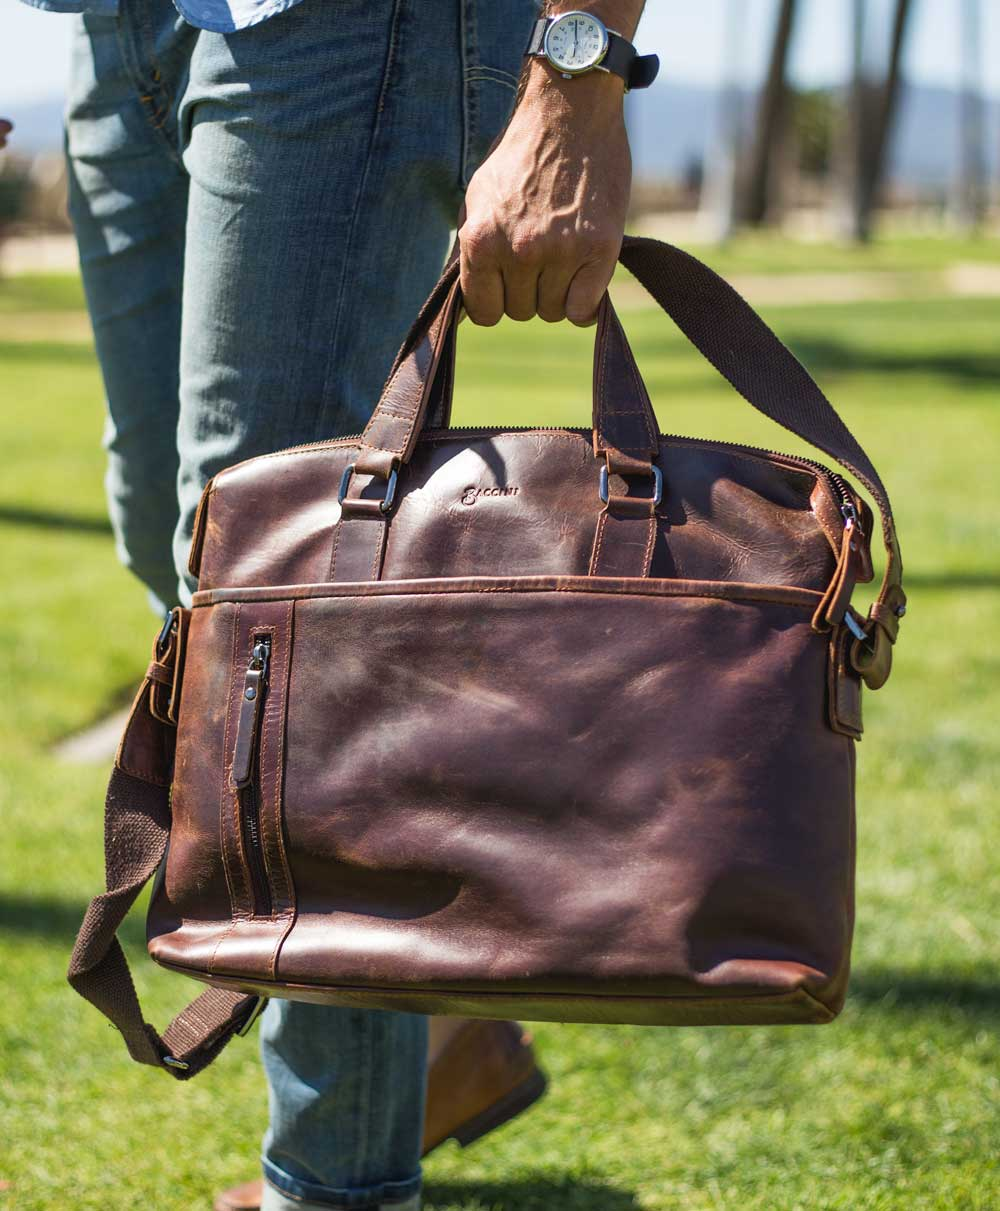 Best affordable leather briefcase under $100